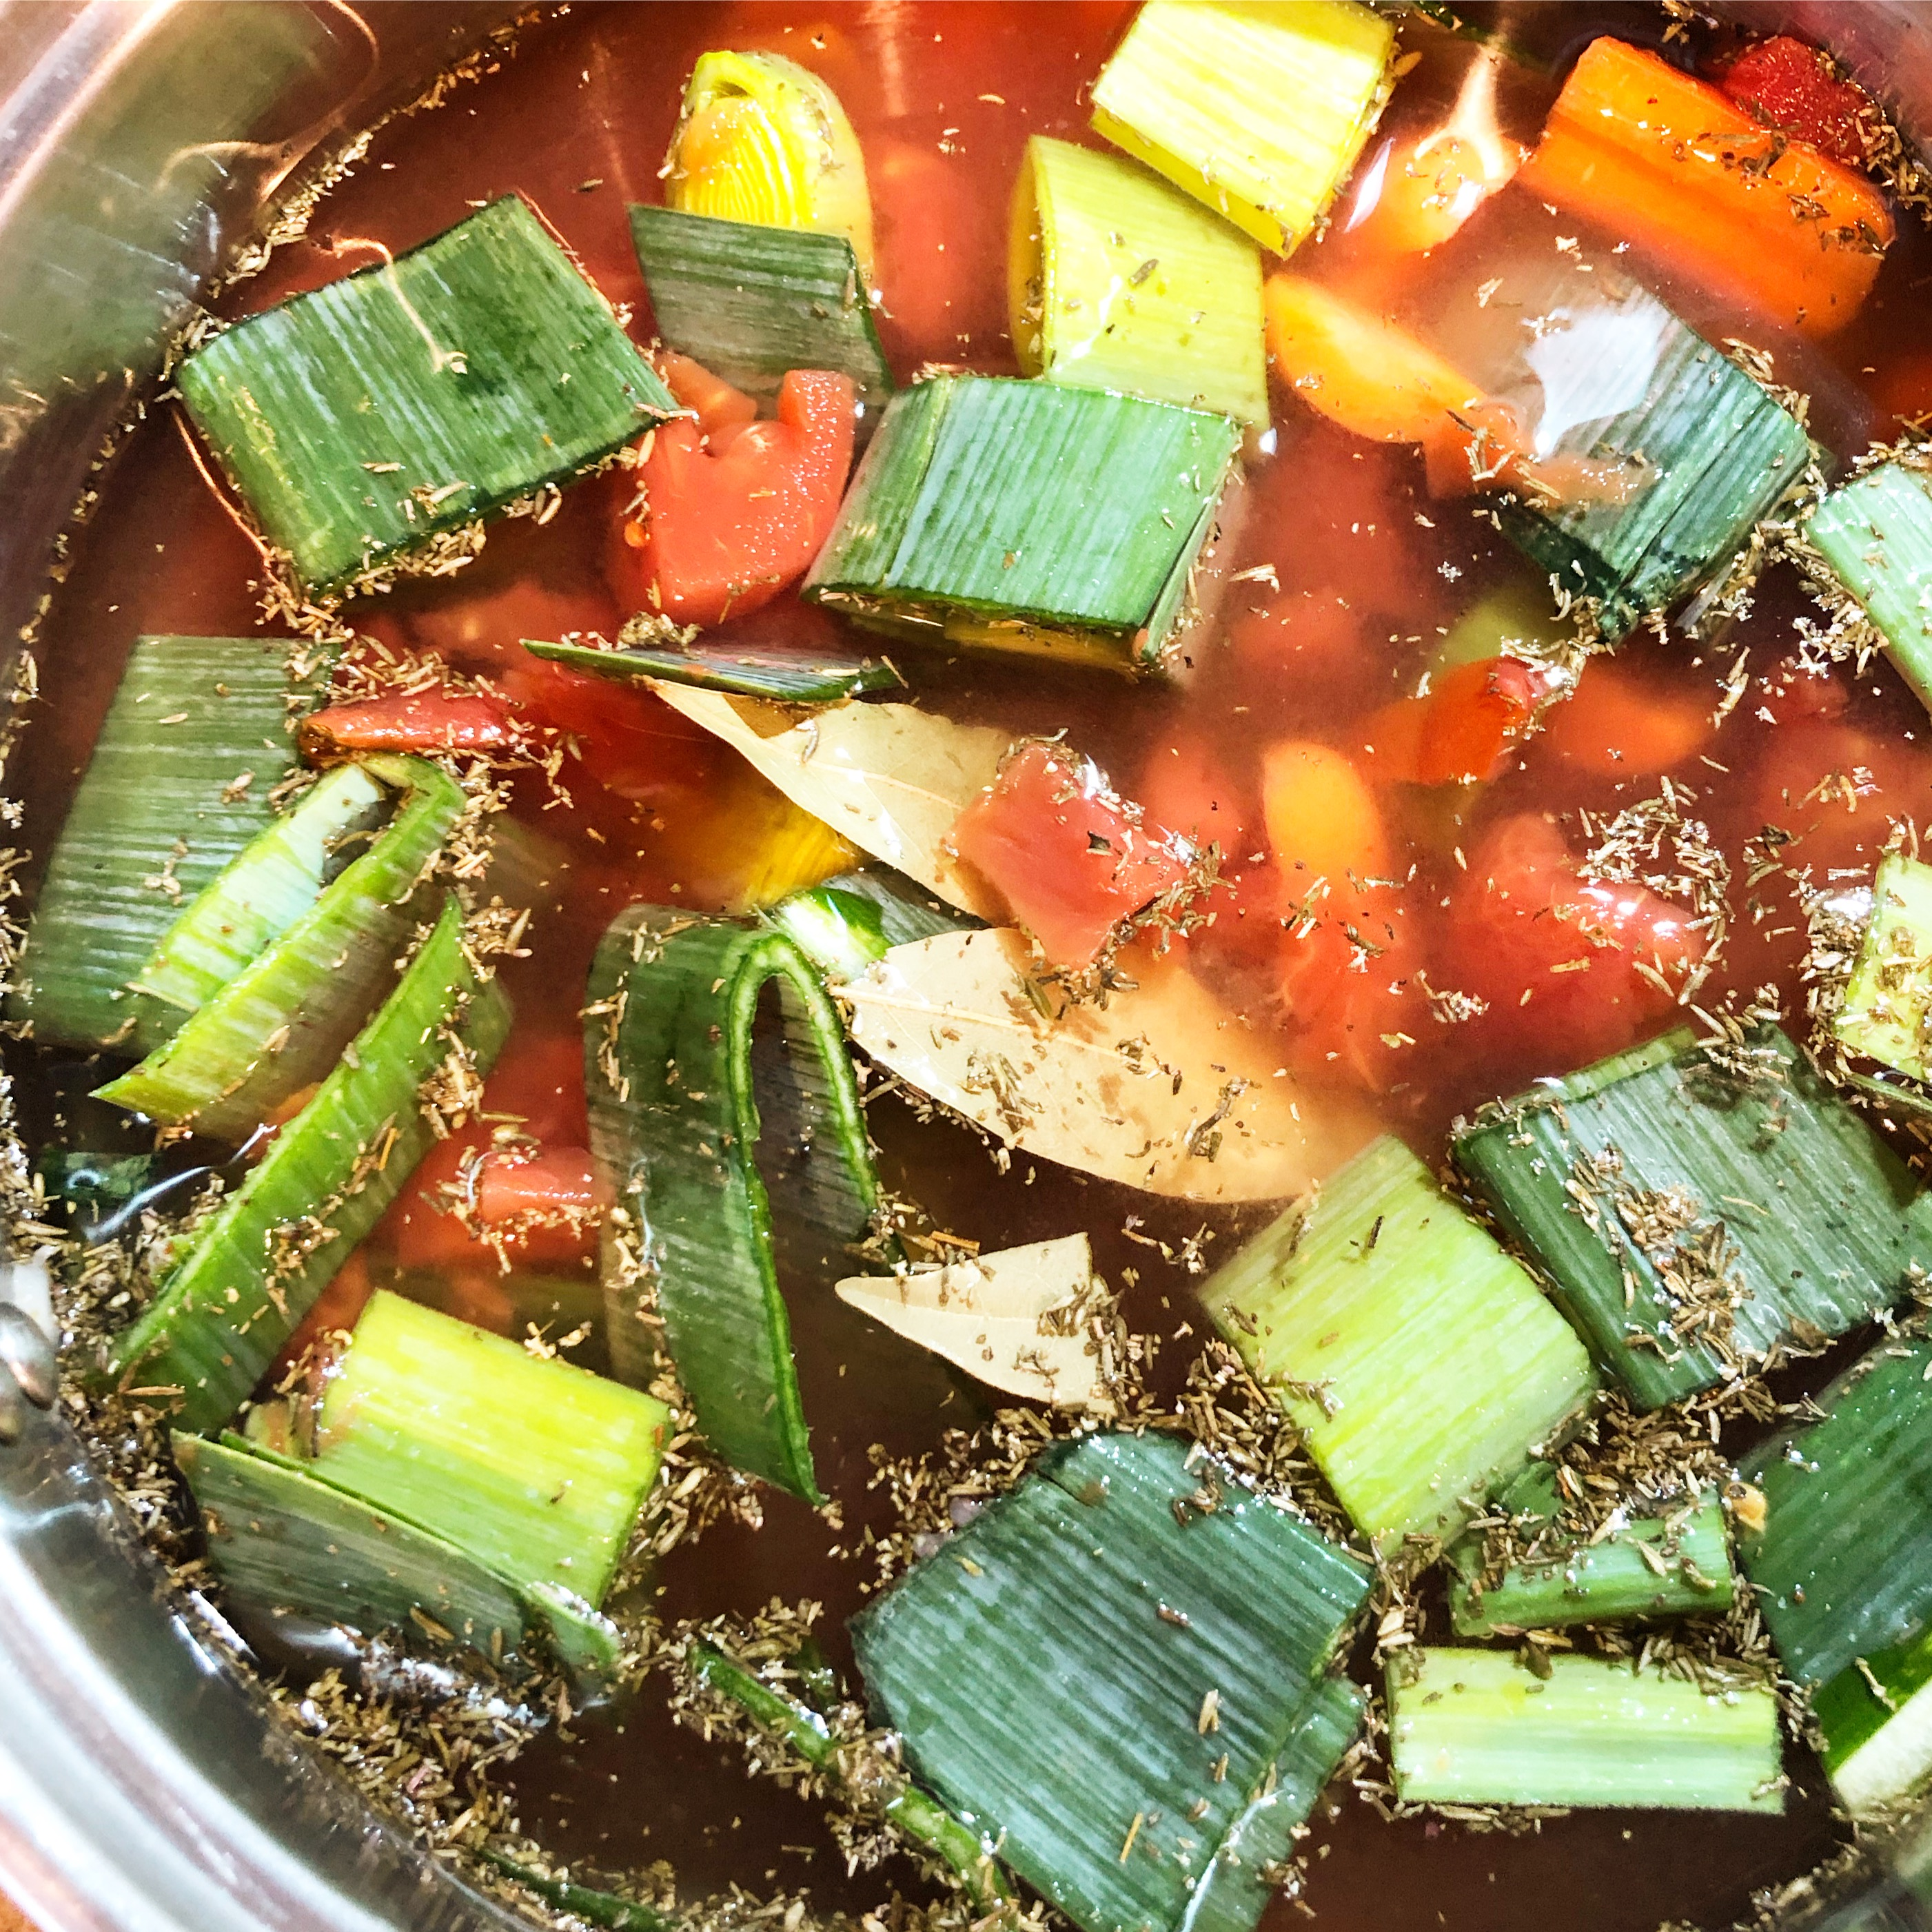 Easy 20 Minute Vegetable Broth - This rich, fragrant, easy to make homemade vegetable broth is an excellent base for soups and also works to boost the flavor in risottos, pastas, and casseroles. via @thiswifecooks